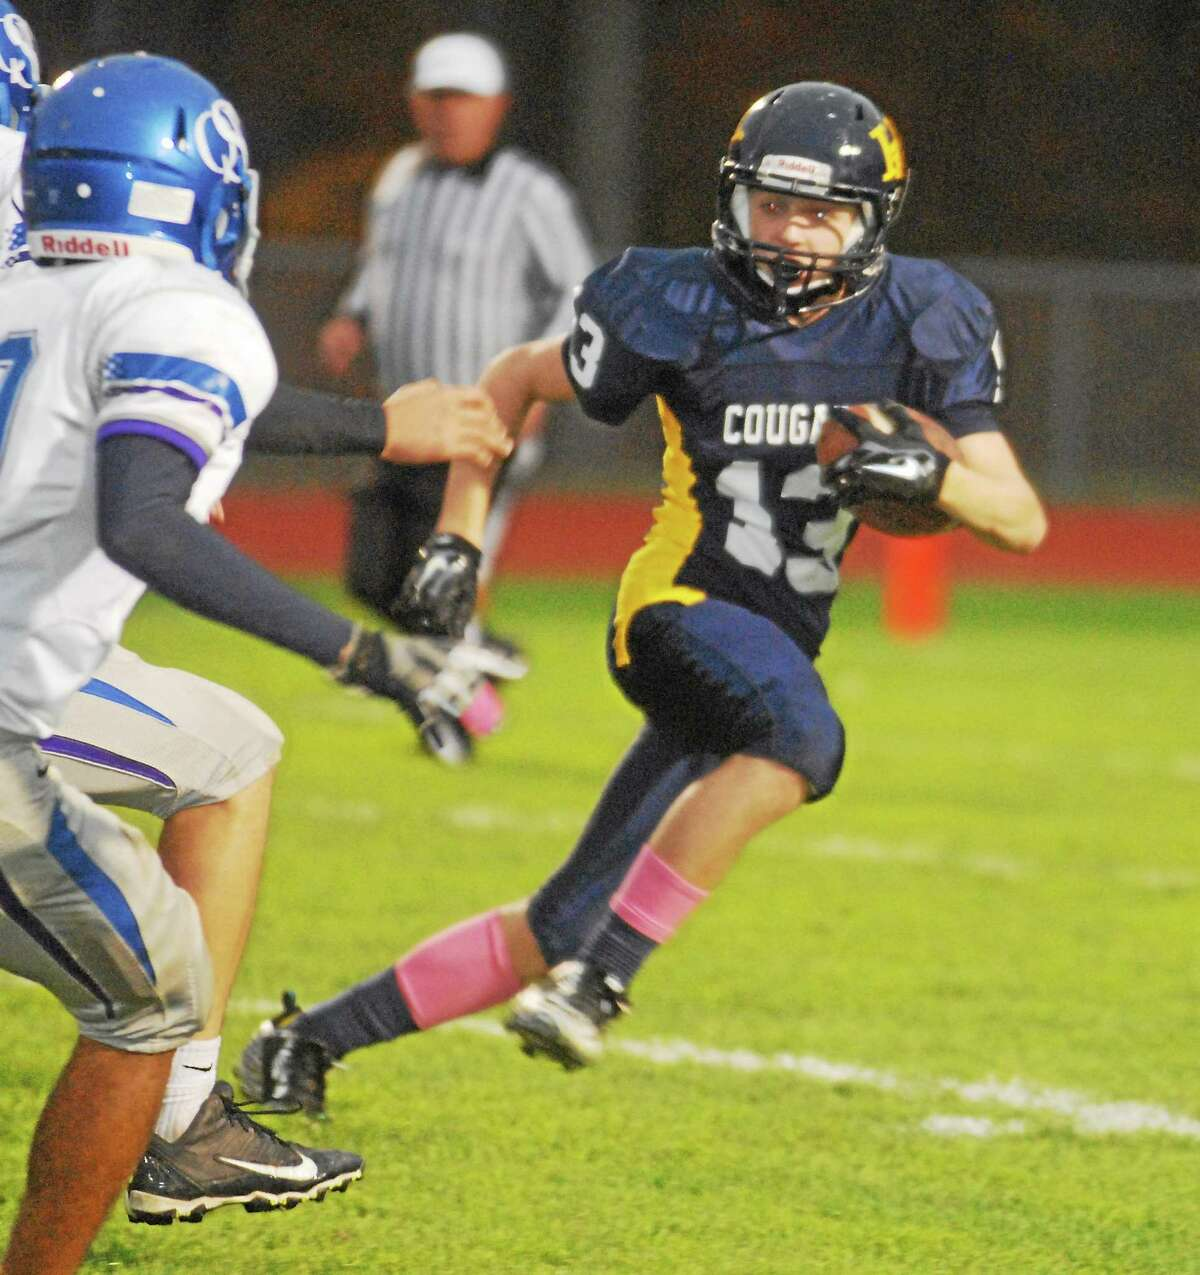 Haddam-Killingworth junior receiver Nate DeRita tries to elude Old Saybrook-Westbrook defenders Friday night. DeRita had seven receptions and two touchdowns in the Cougars' 43-13 win.